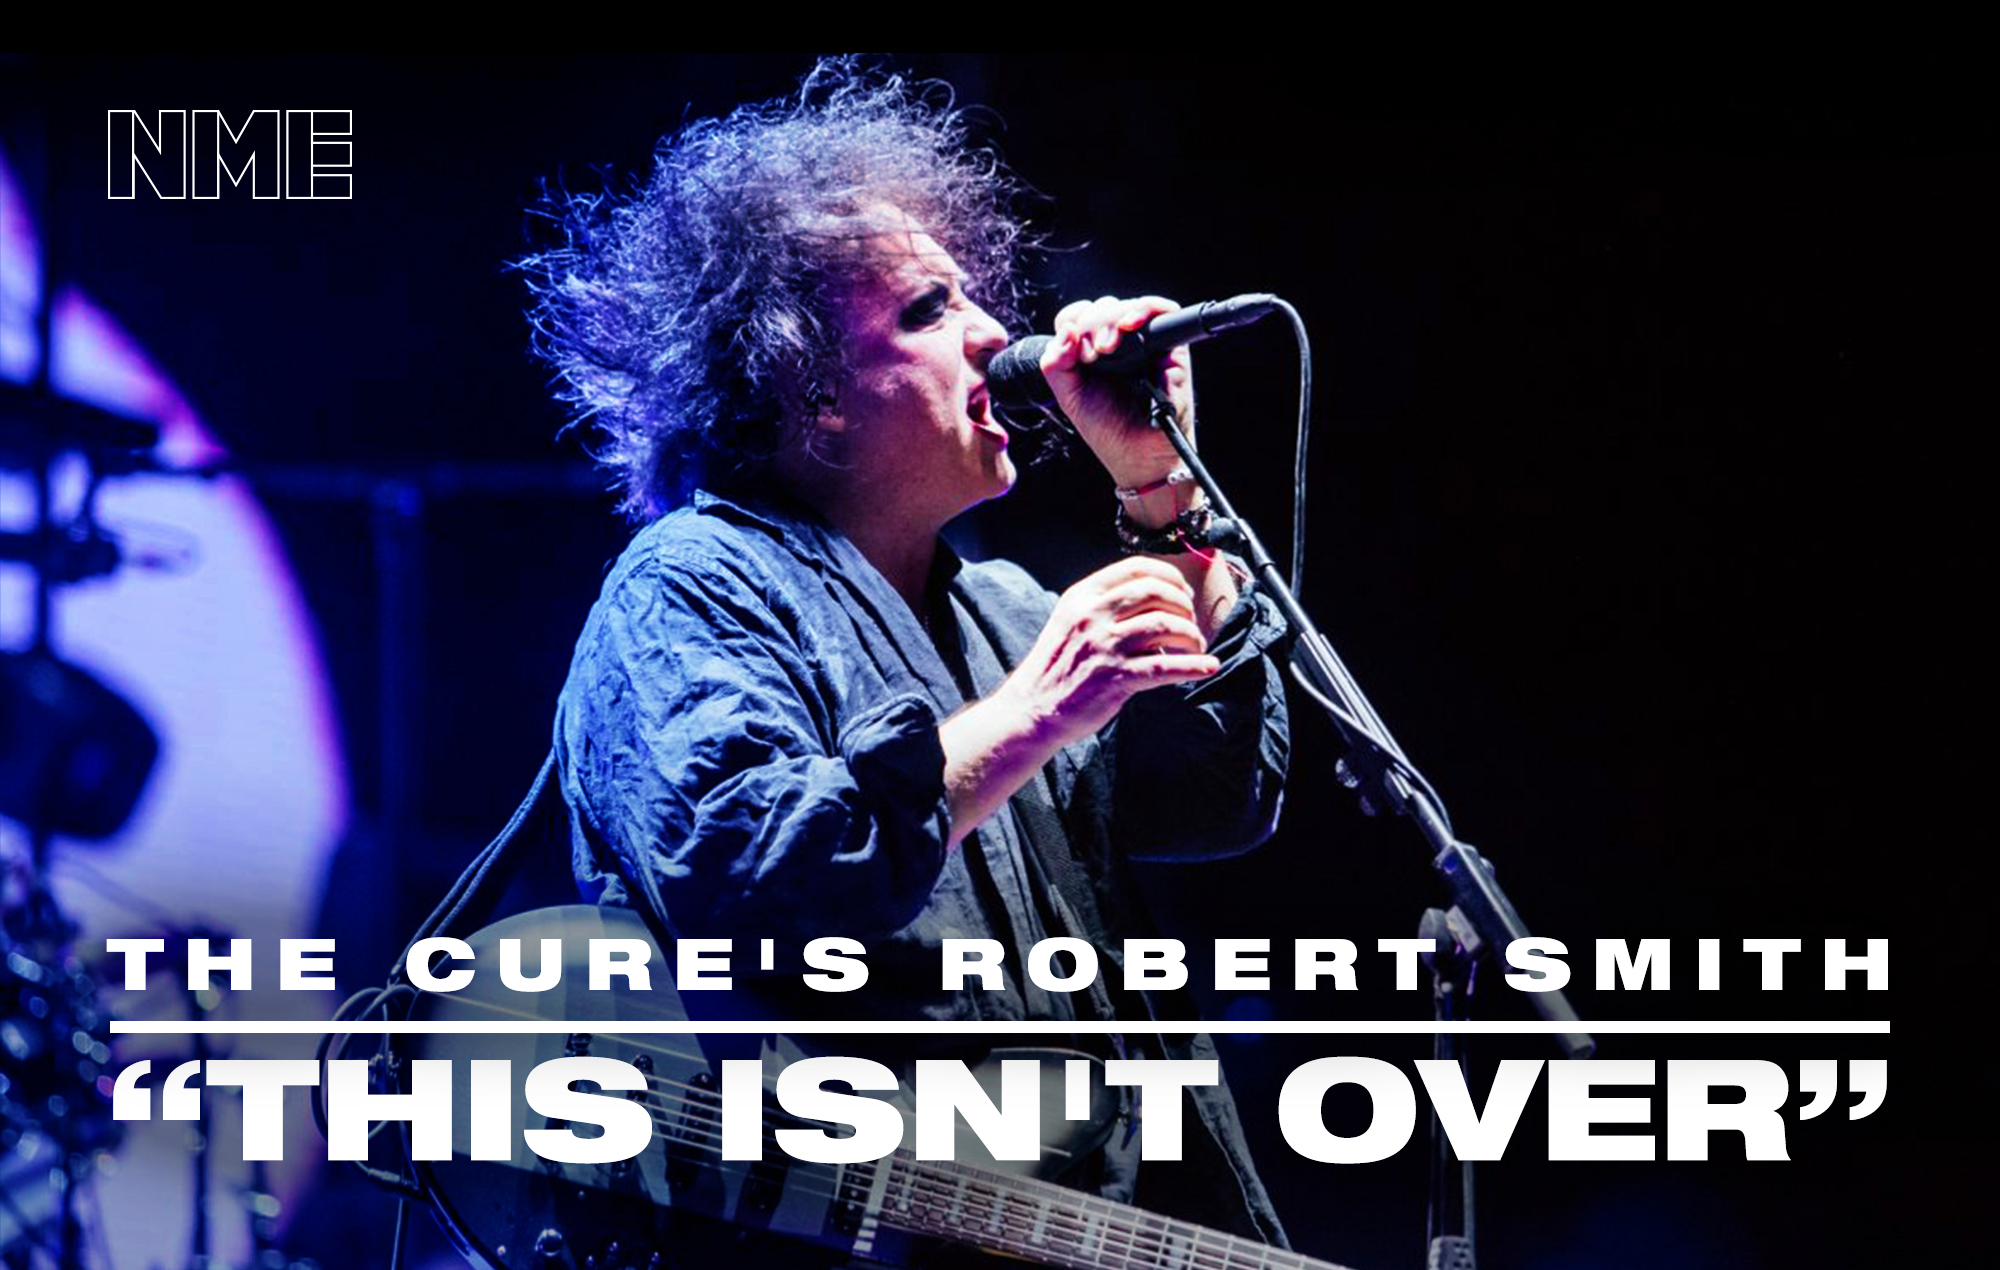 """There are so many misconceptions about The Cure"": an exclusive interview with Robert Smith"